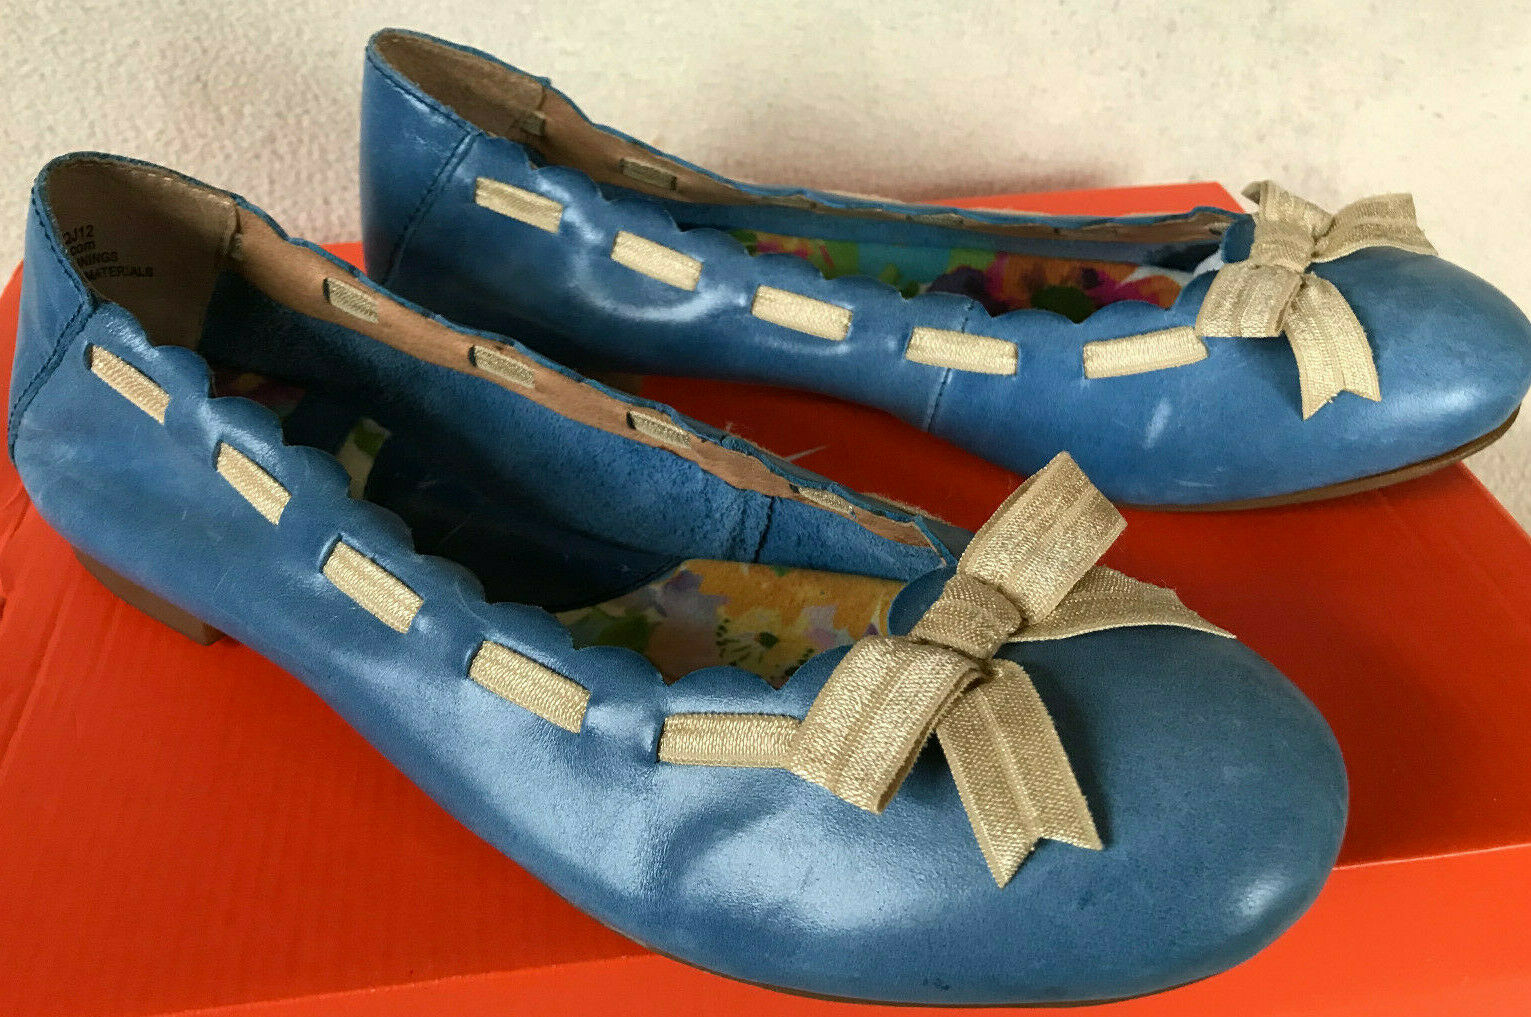 punti vendita Born Marnee B78804 blu blu blu Burnished Leather Slip-On Ballet Flats scarpe Donna  8.5  in vendita